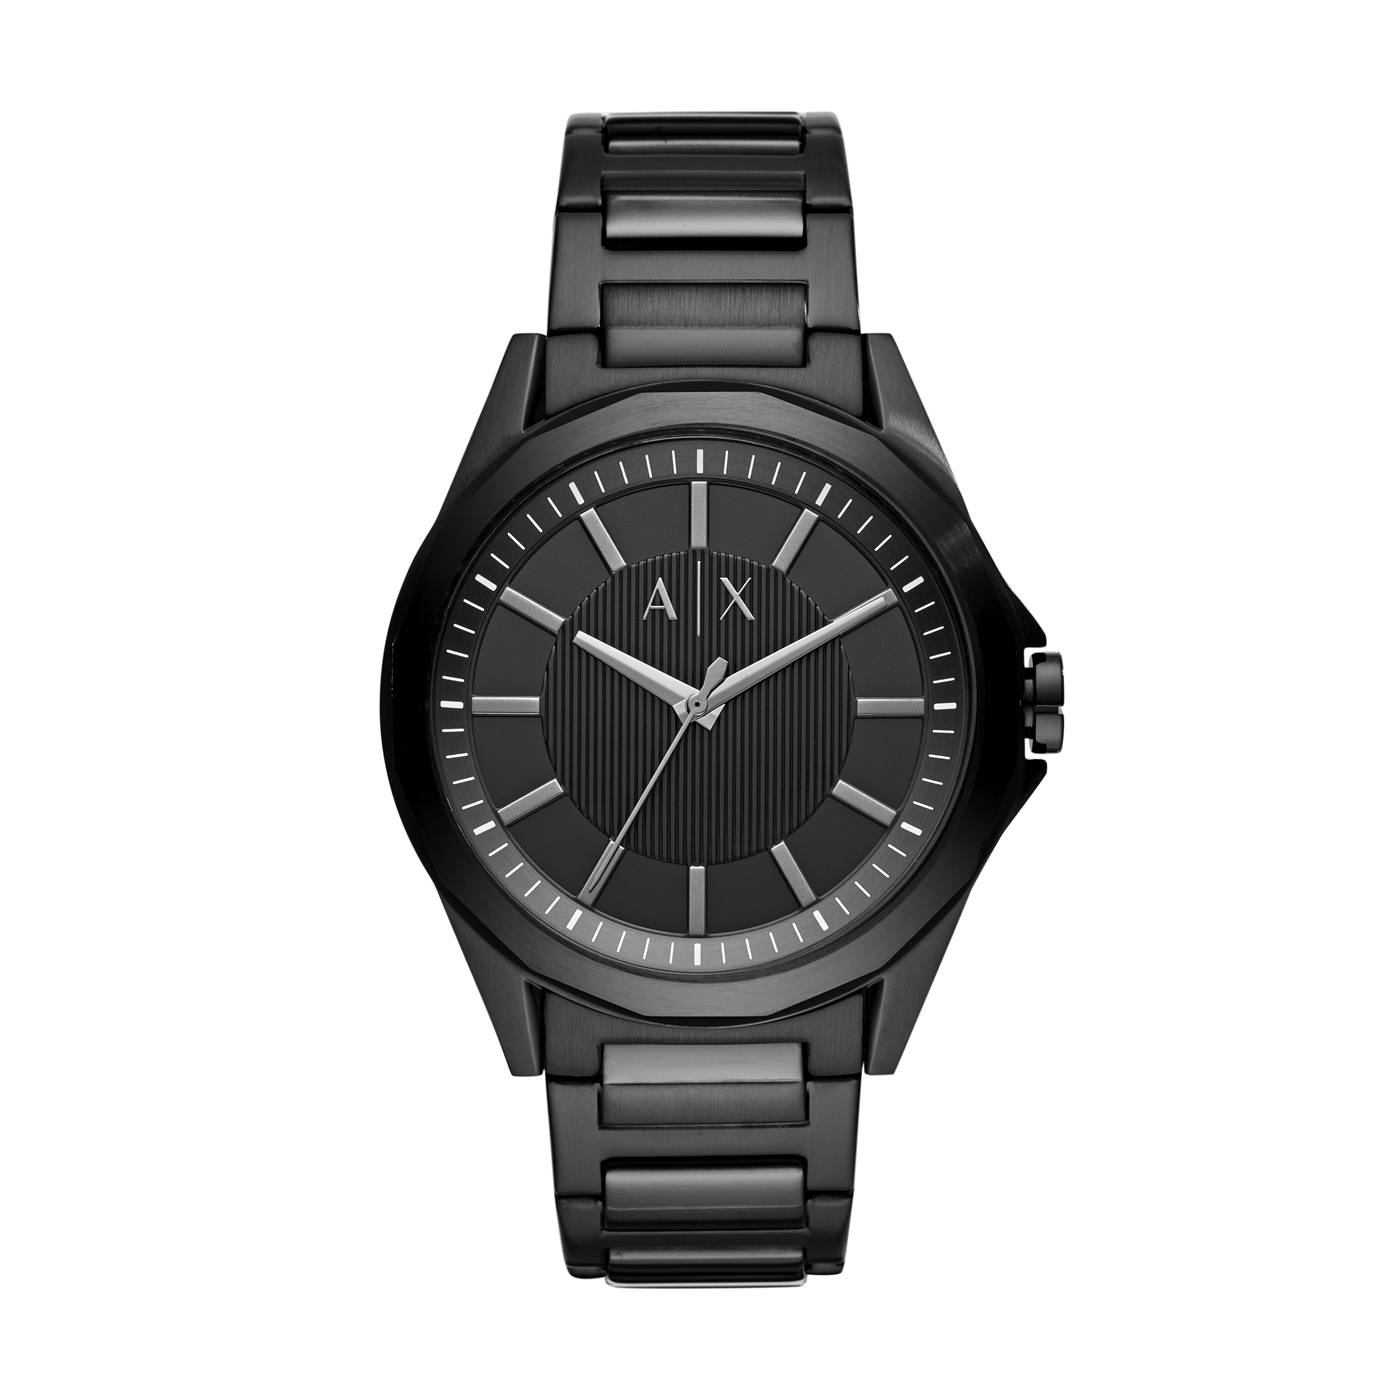 Immagine di Armani Exchange Drexler Watch AX2620